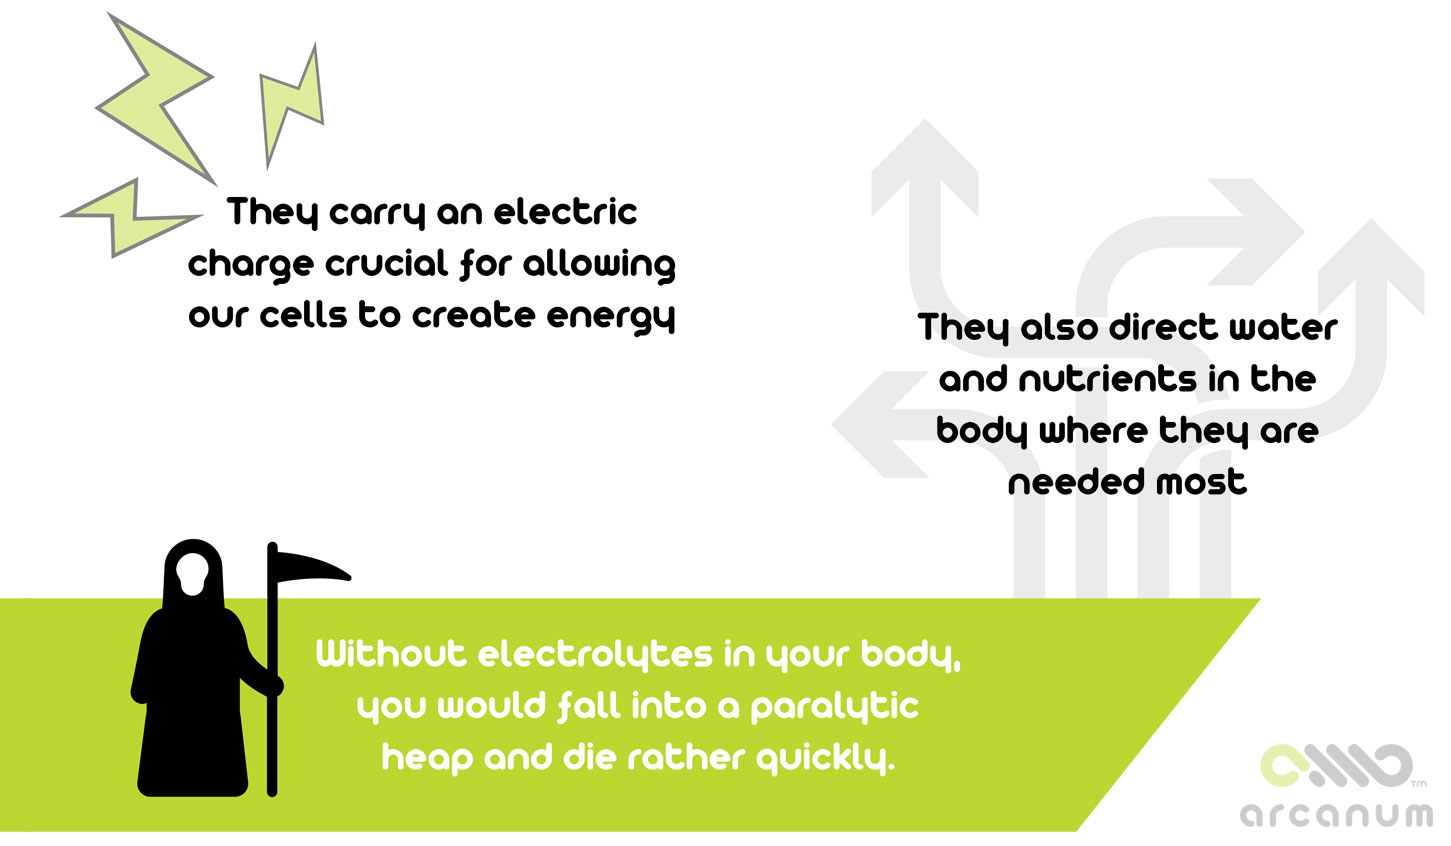 Electrolytes carry crucial electrical charges and nutrients to your cells.